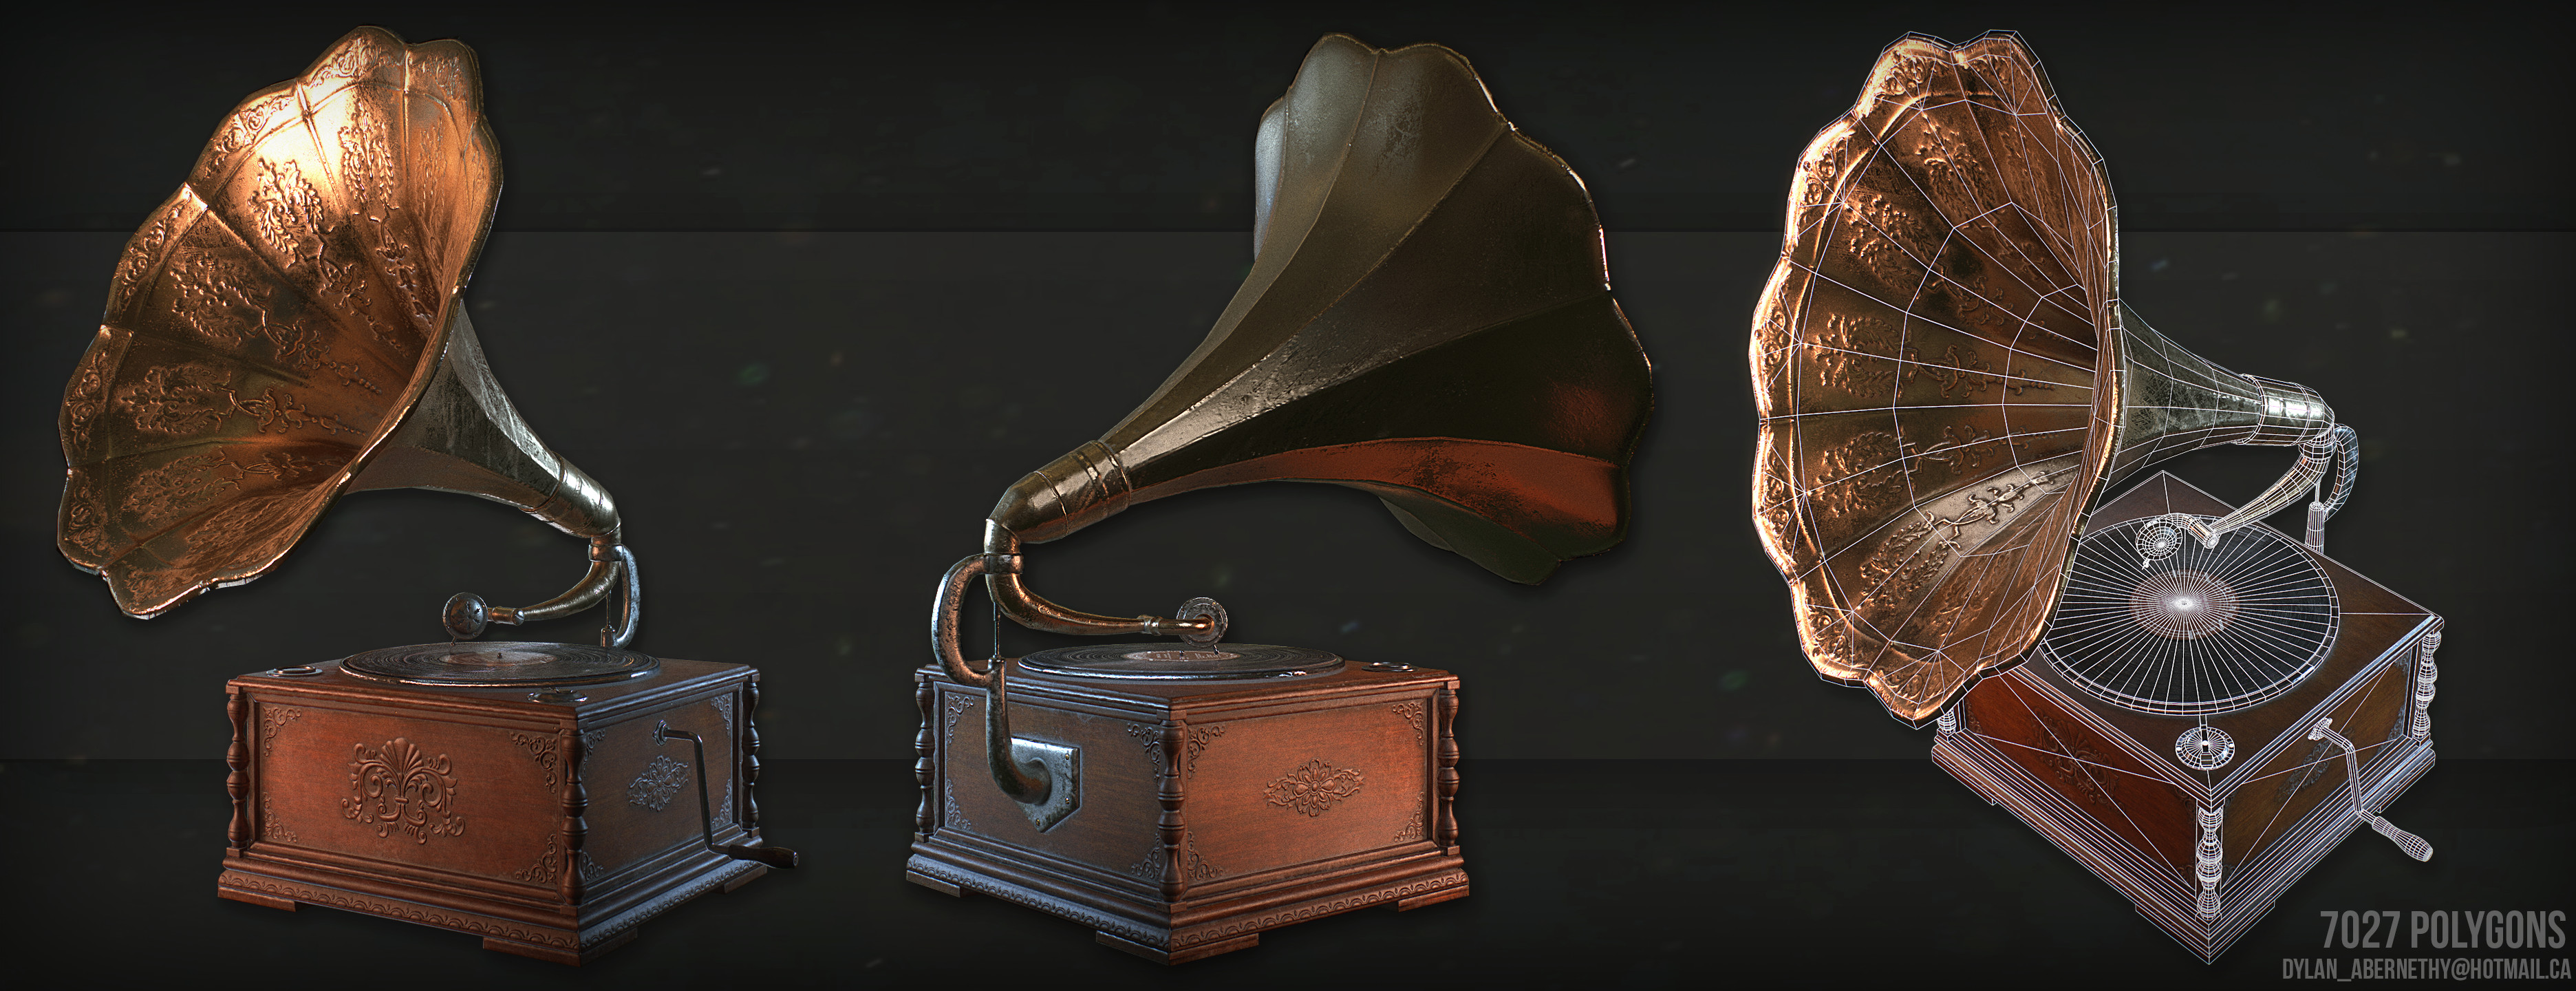 Gramophone Breakdown